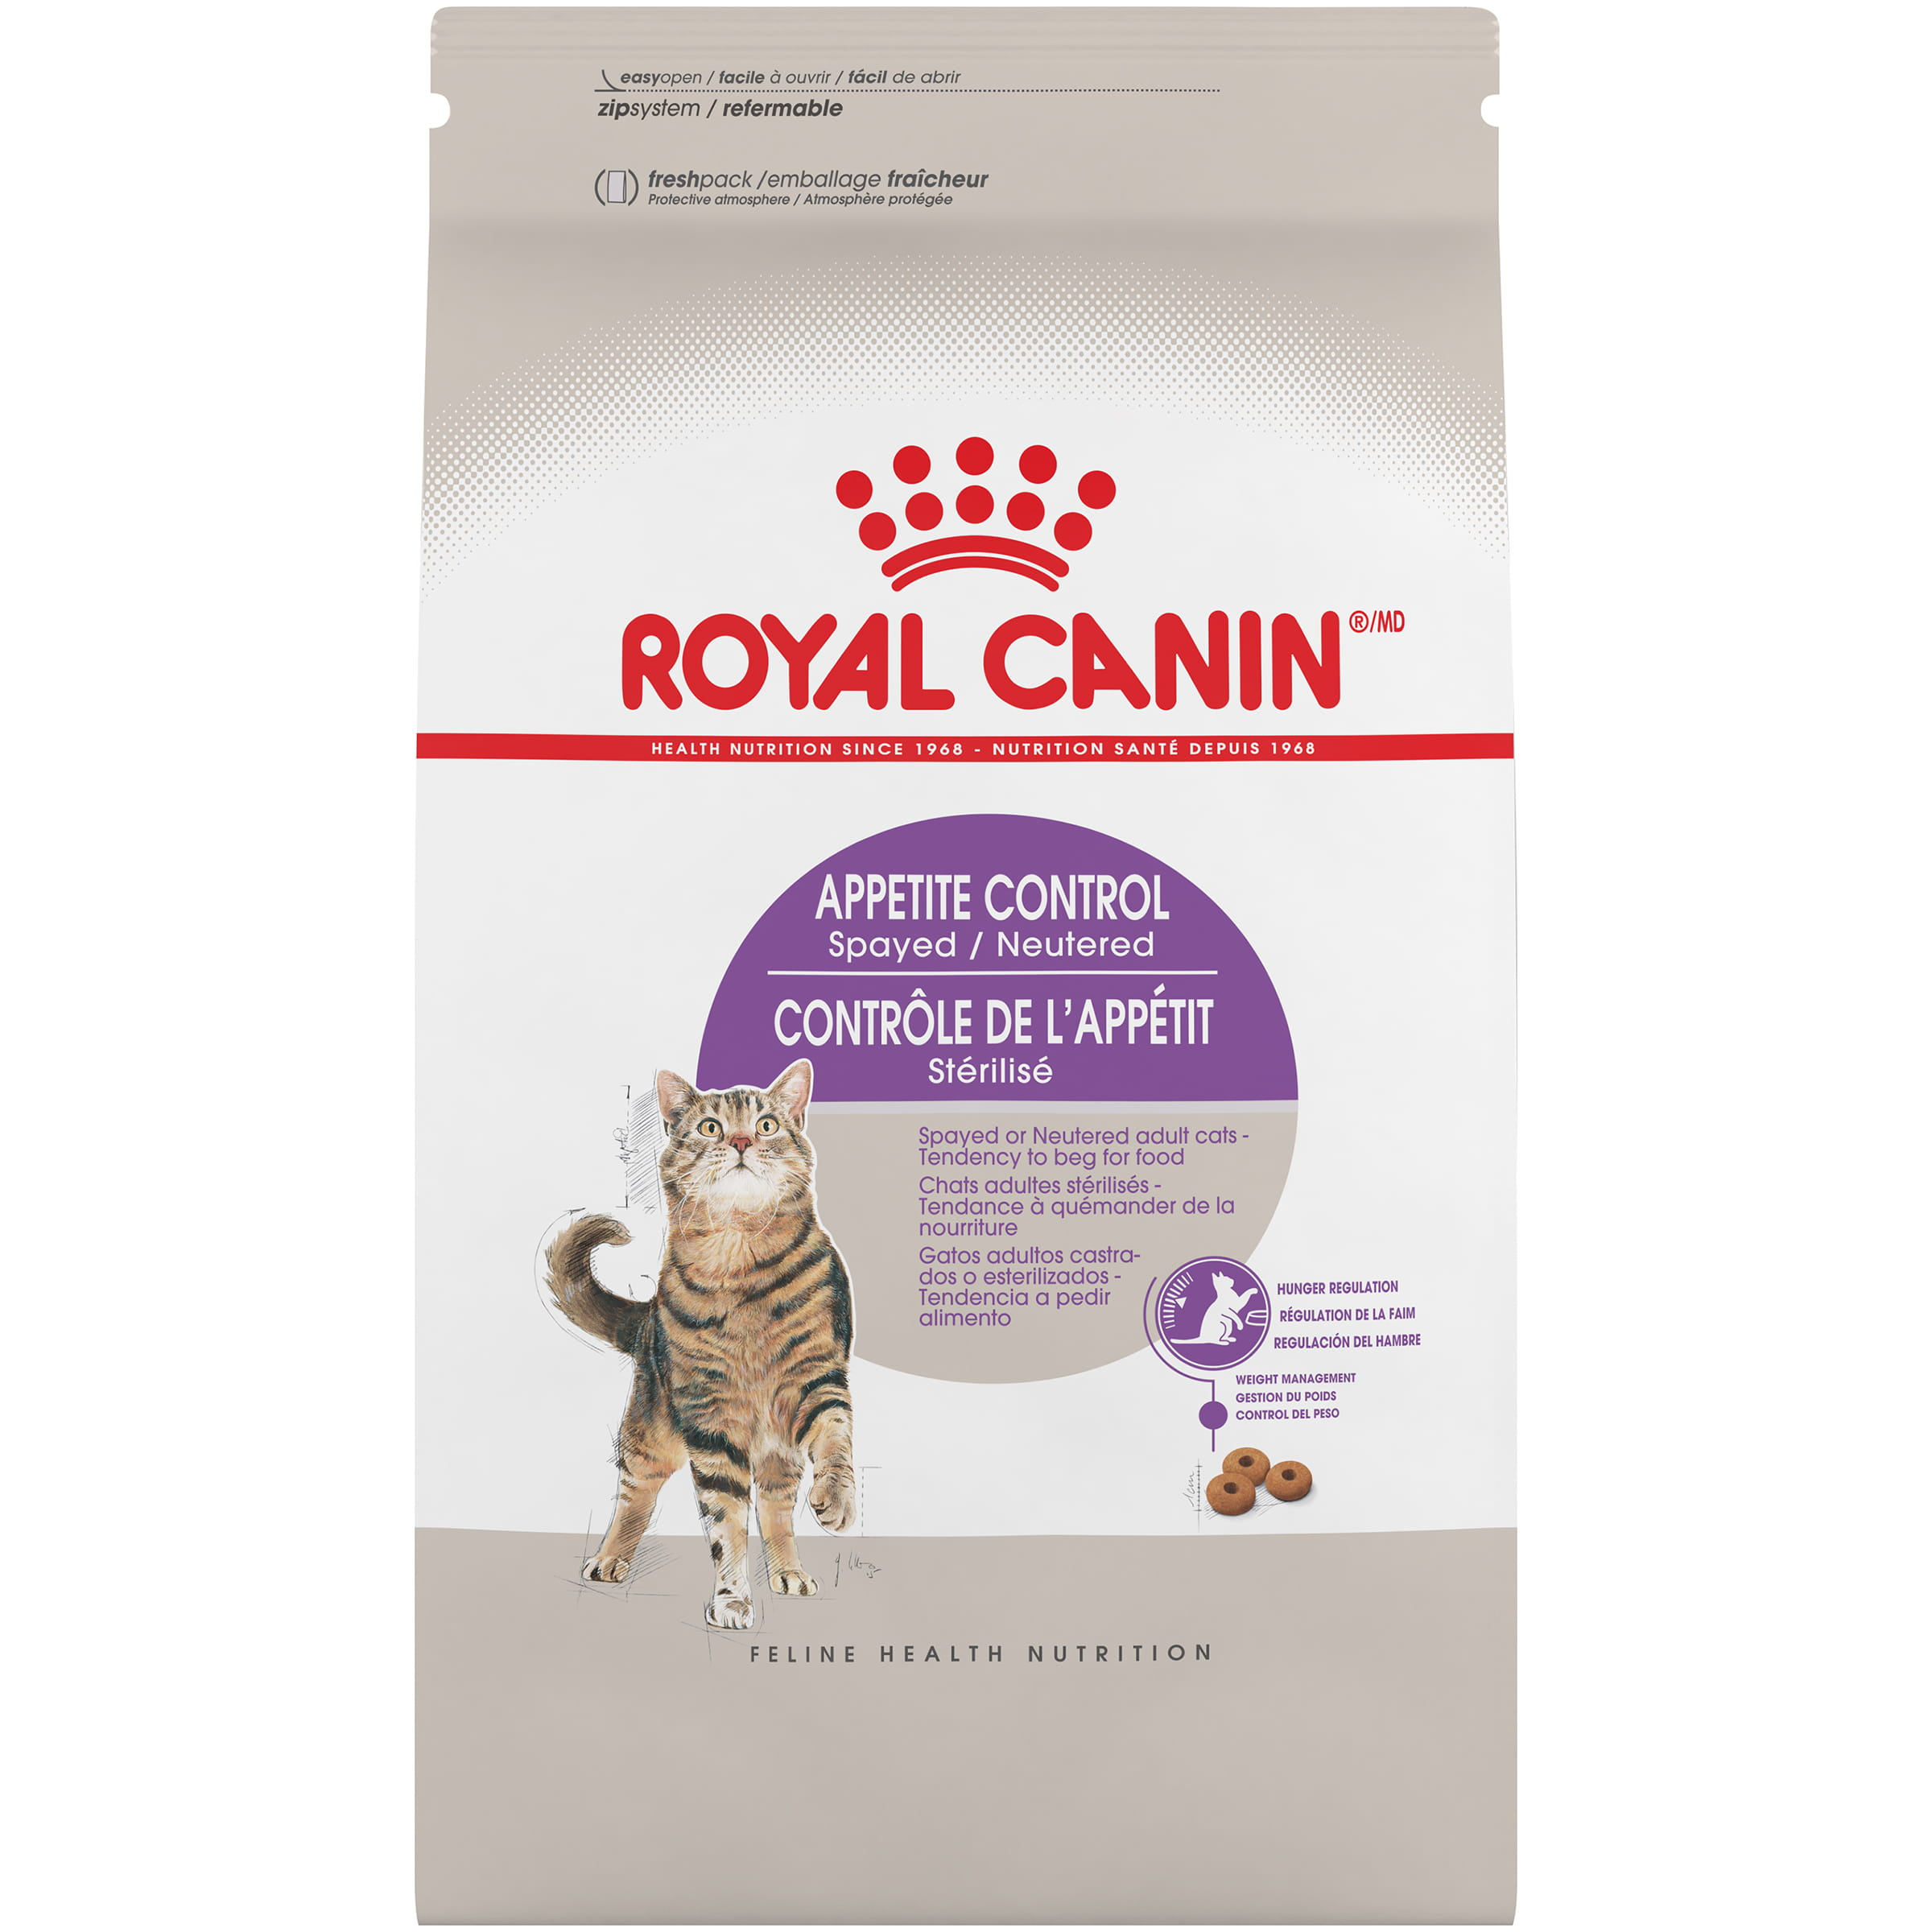 Royal Canin Feline Health Nutrition Appetite Control Spayed / Neutered Dry Adult Cat Food